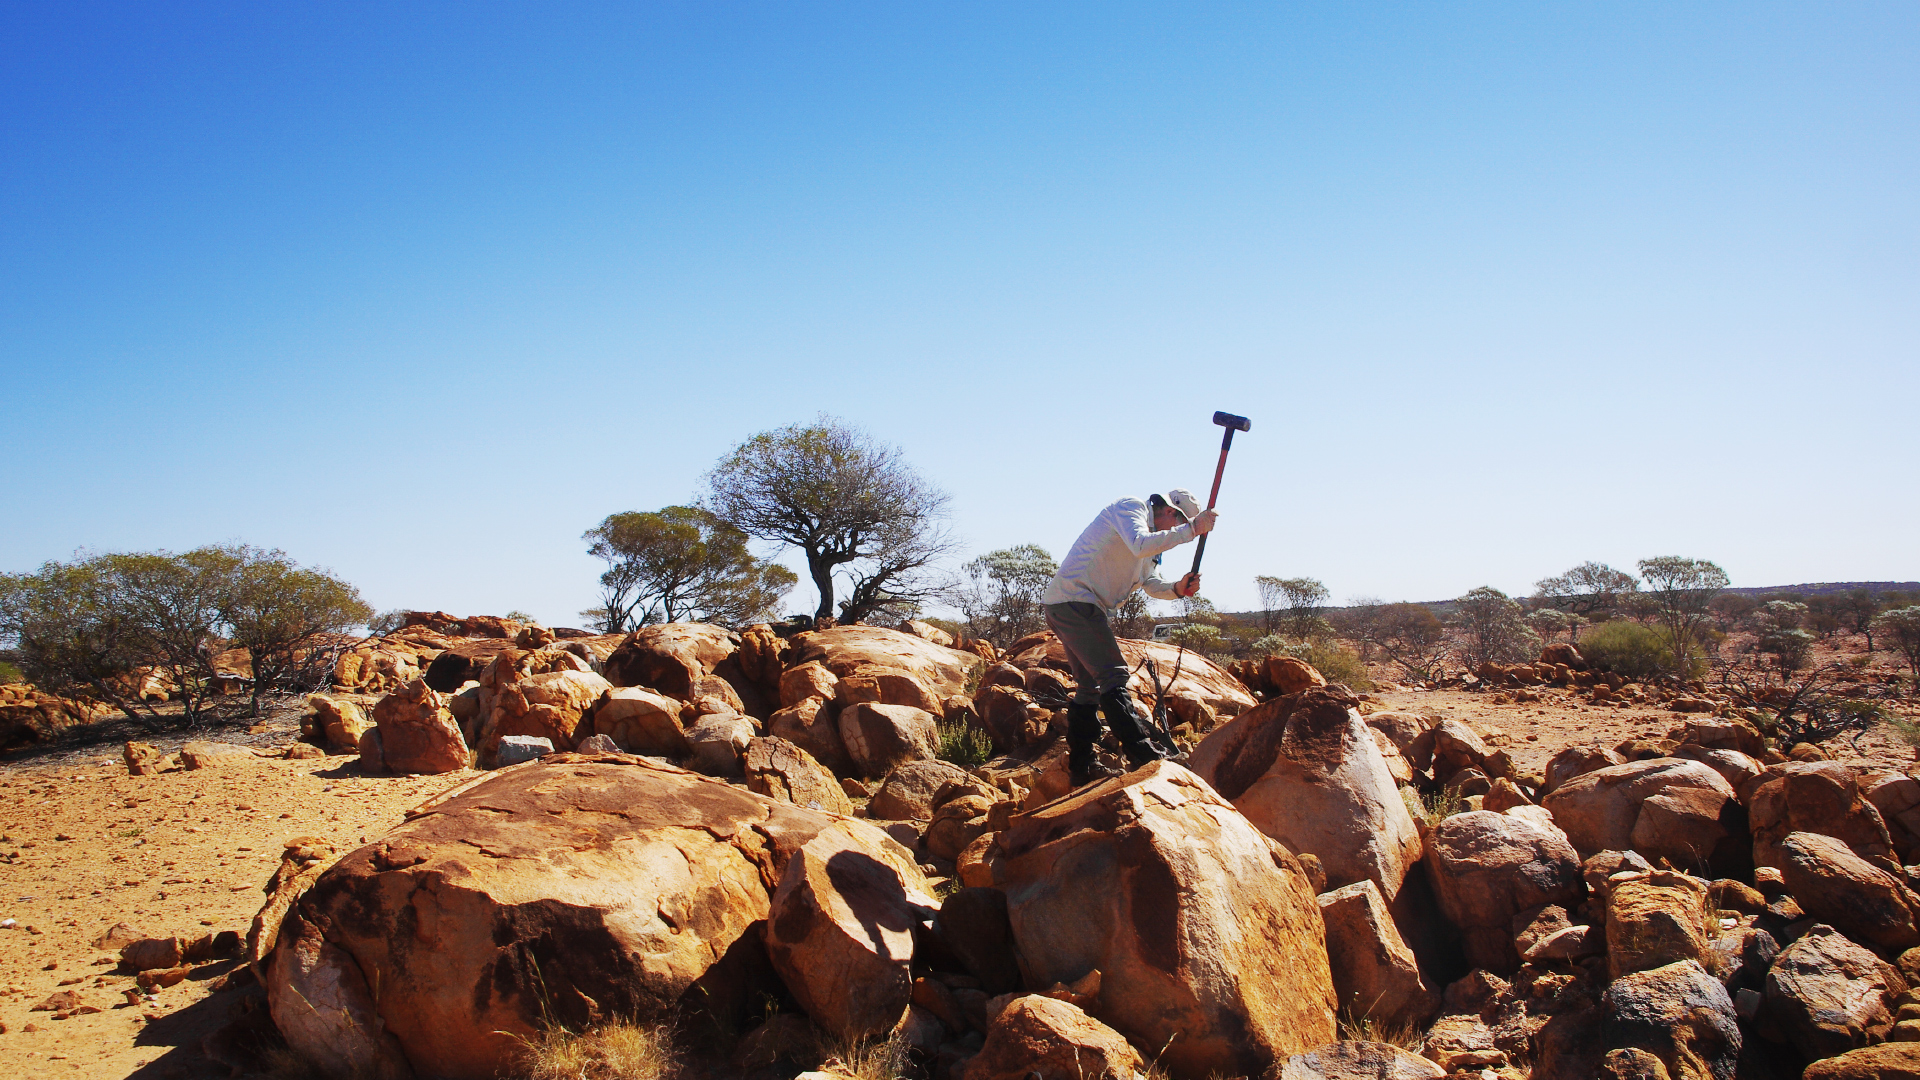 <p>Tim Elliott collecting samples of ancient crust rock in Yilgarn Craton in Western Australia.</p>